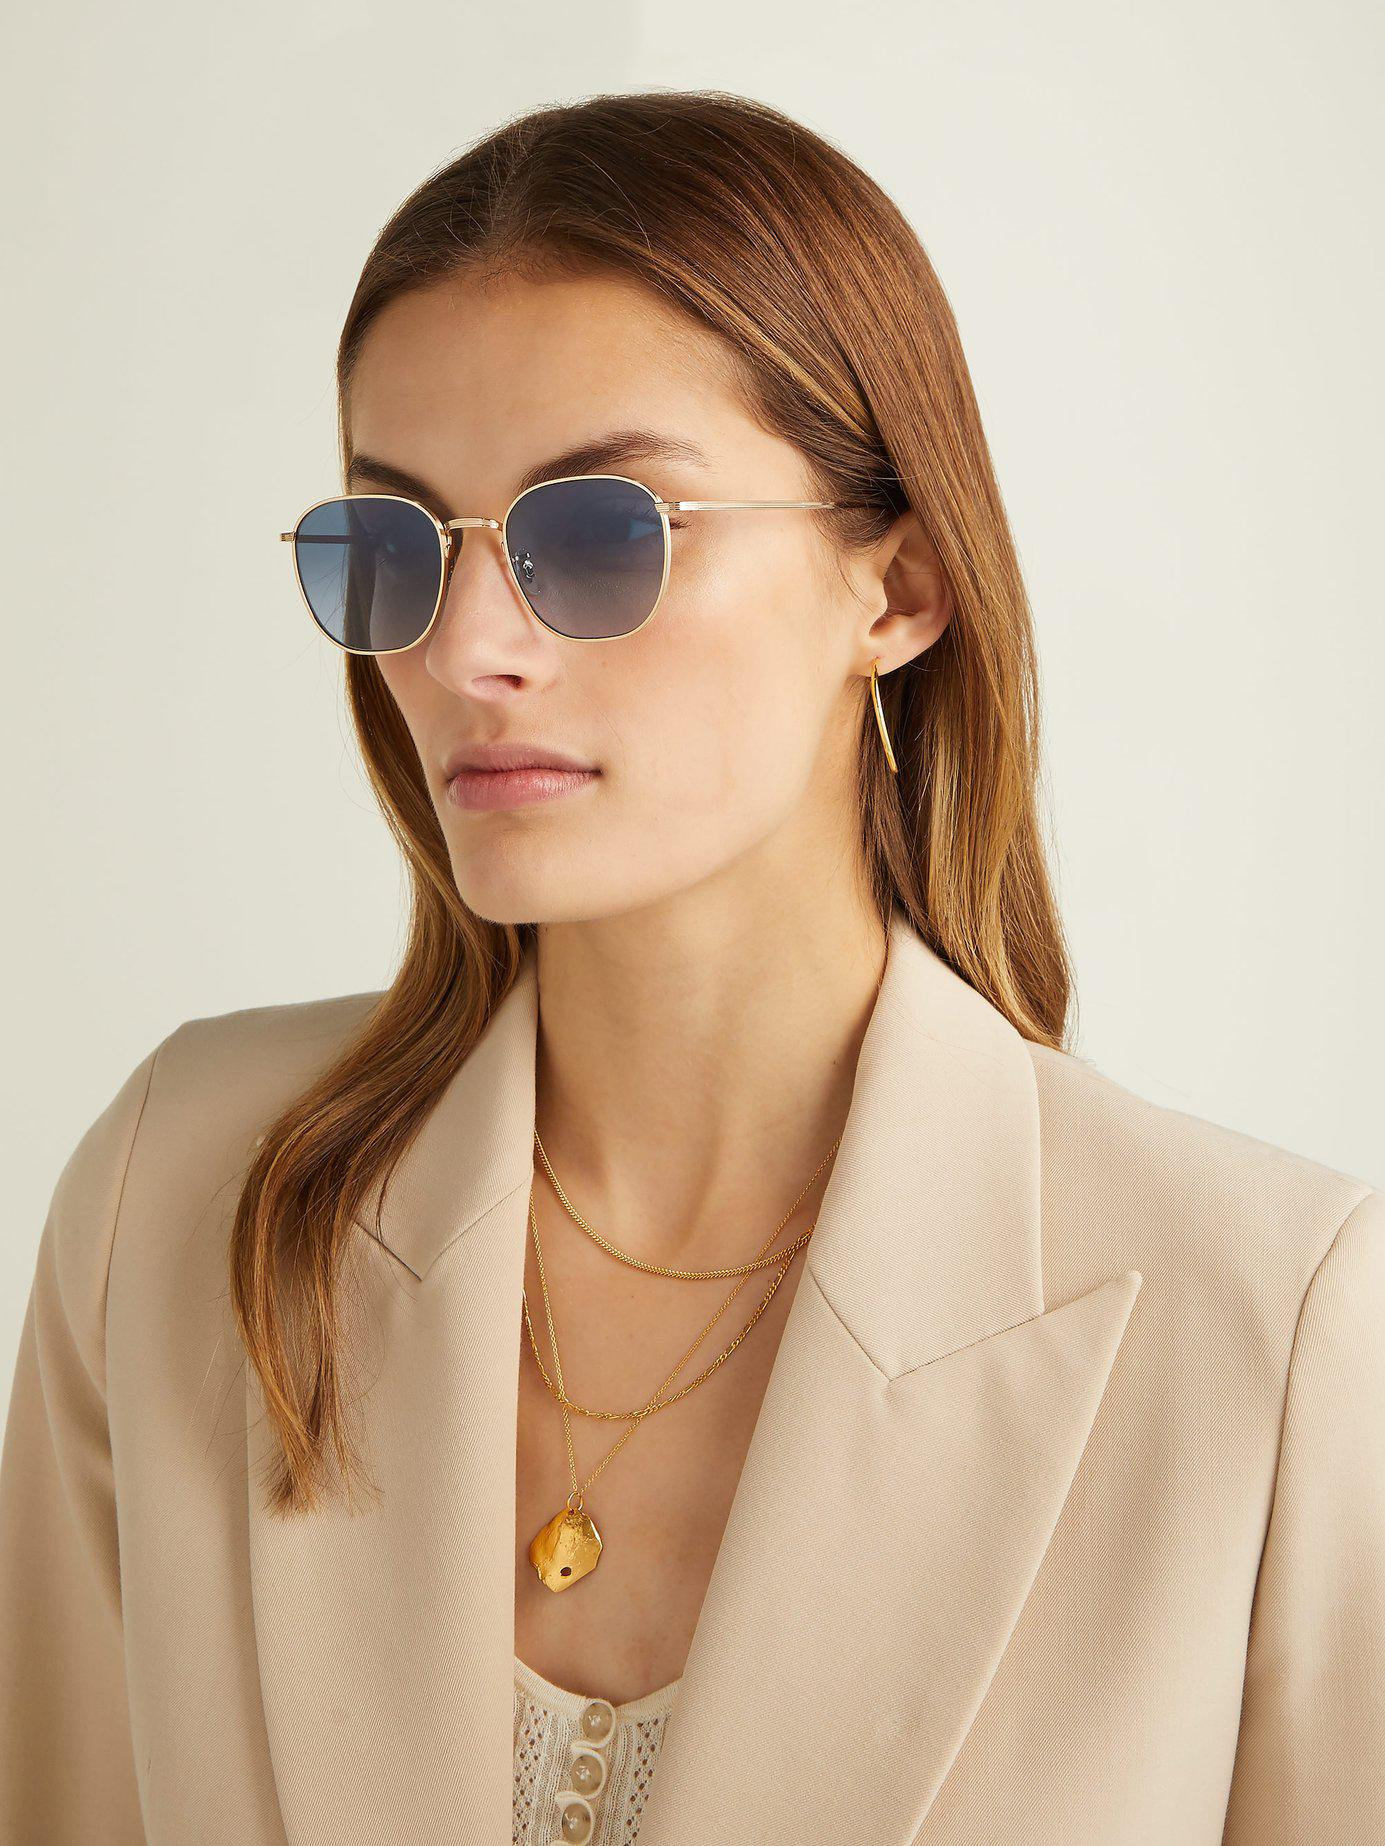 85607fa0009 Lyst - The Row X Oliver Peoples Board Meeting 2 Square Sunglasses in  Metallic